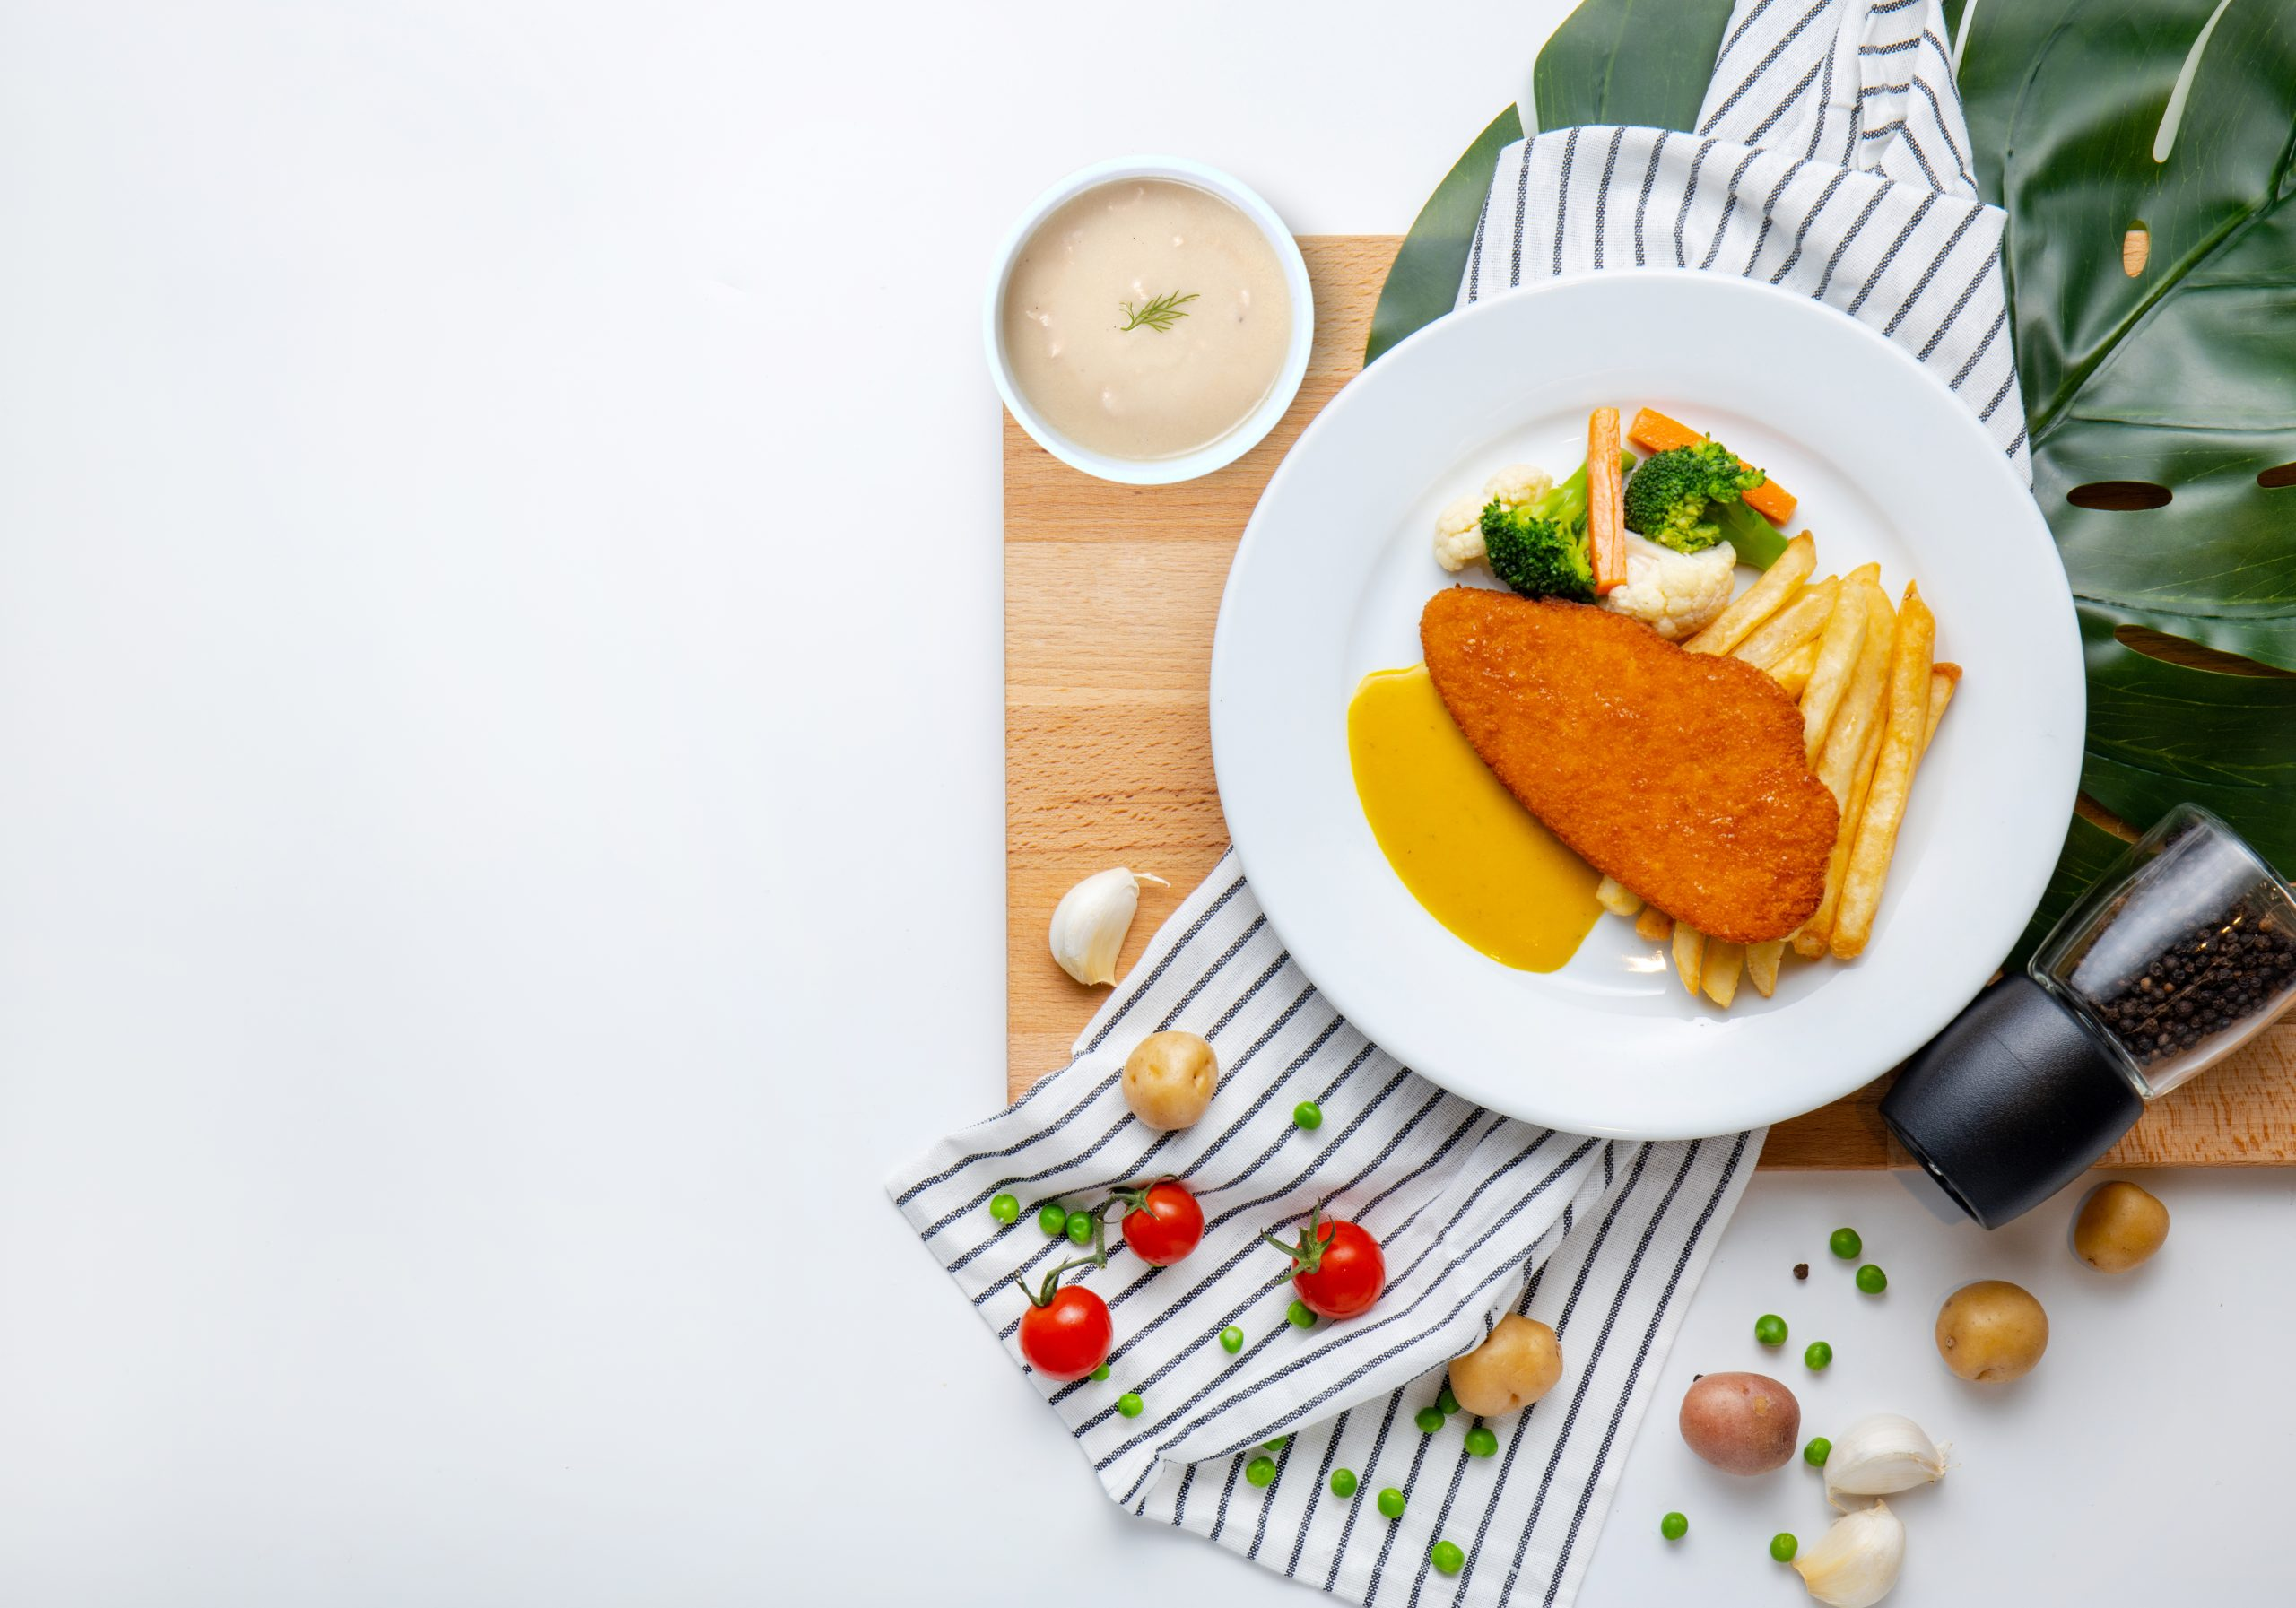 IKEA Malaysia Now Offers a Variety of Plant-Based Food